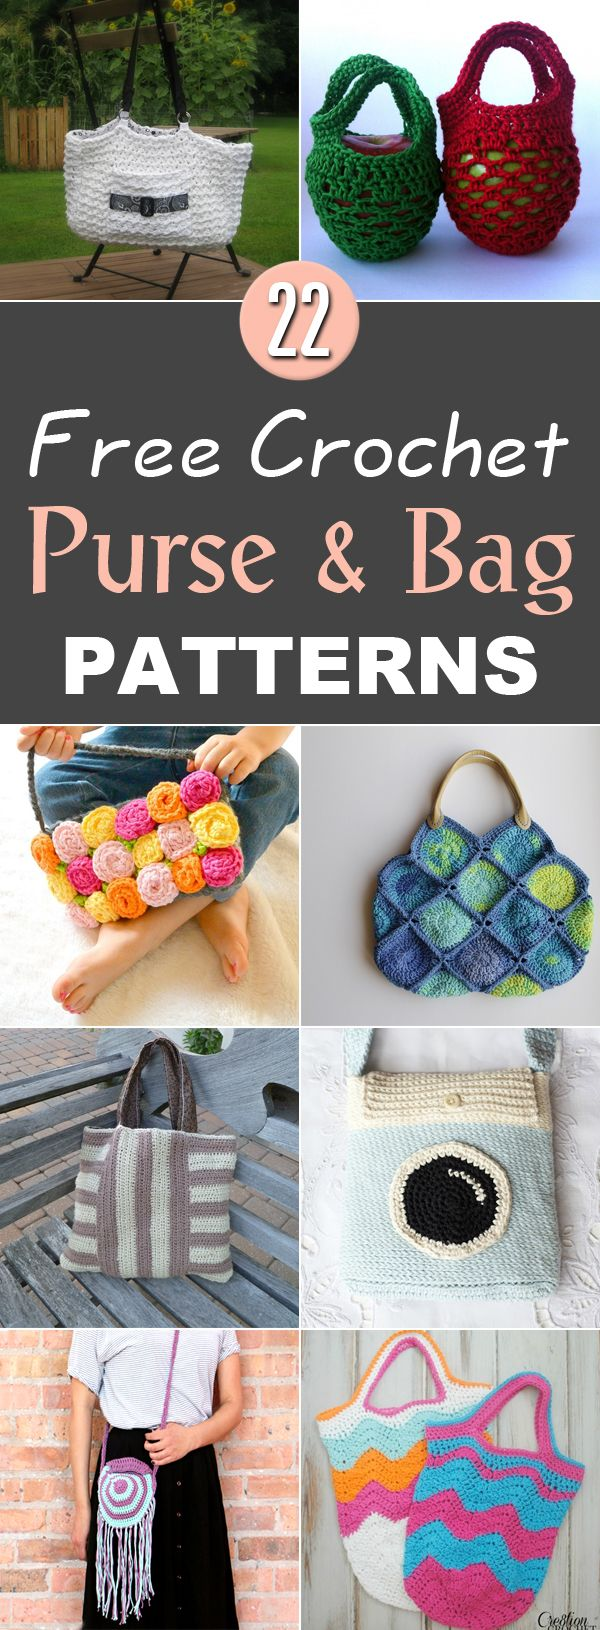 22 Free Crochet Purse & Bag Patterns